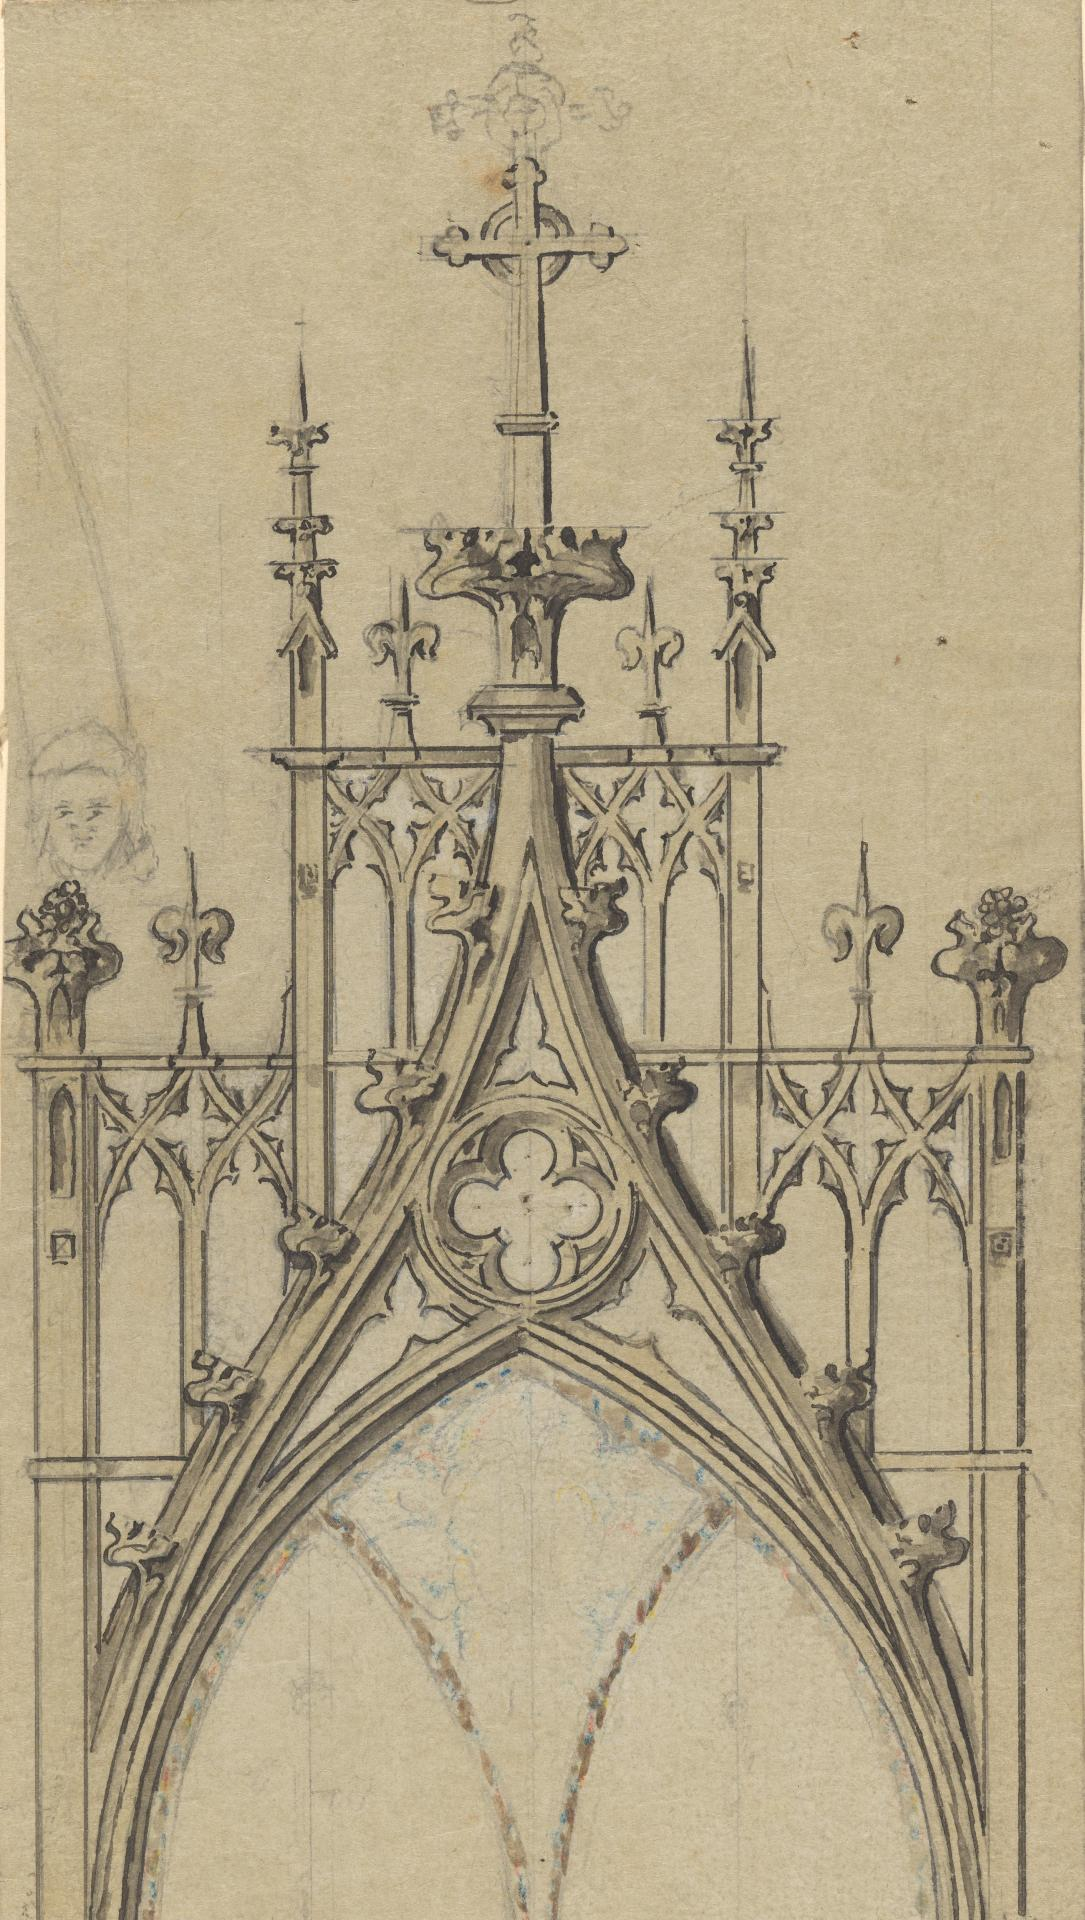 Fragment of a design for the chancel tablets at St John's Church of England, Toorak